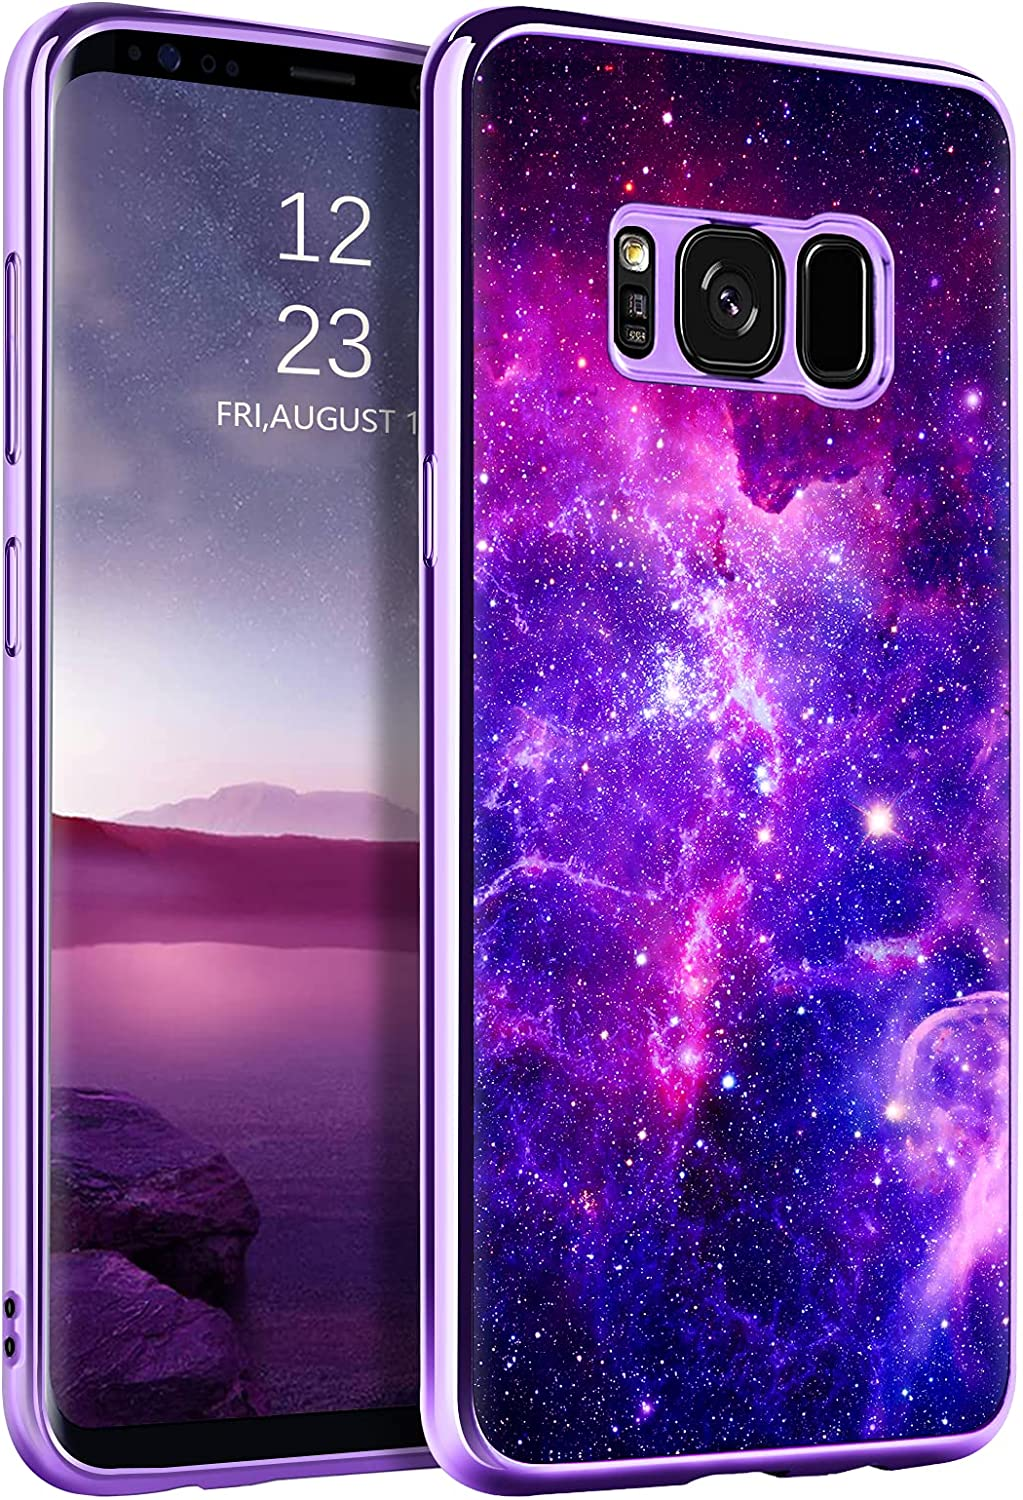 BENTOBEN Galaxy S8 Case, Slim Fit Glow in The Dark Hybrid Hard PC Soft Bumper Drop Protective Phone Cover for Samsung Galaxy S8 5.8 inch, Cool Nebula